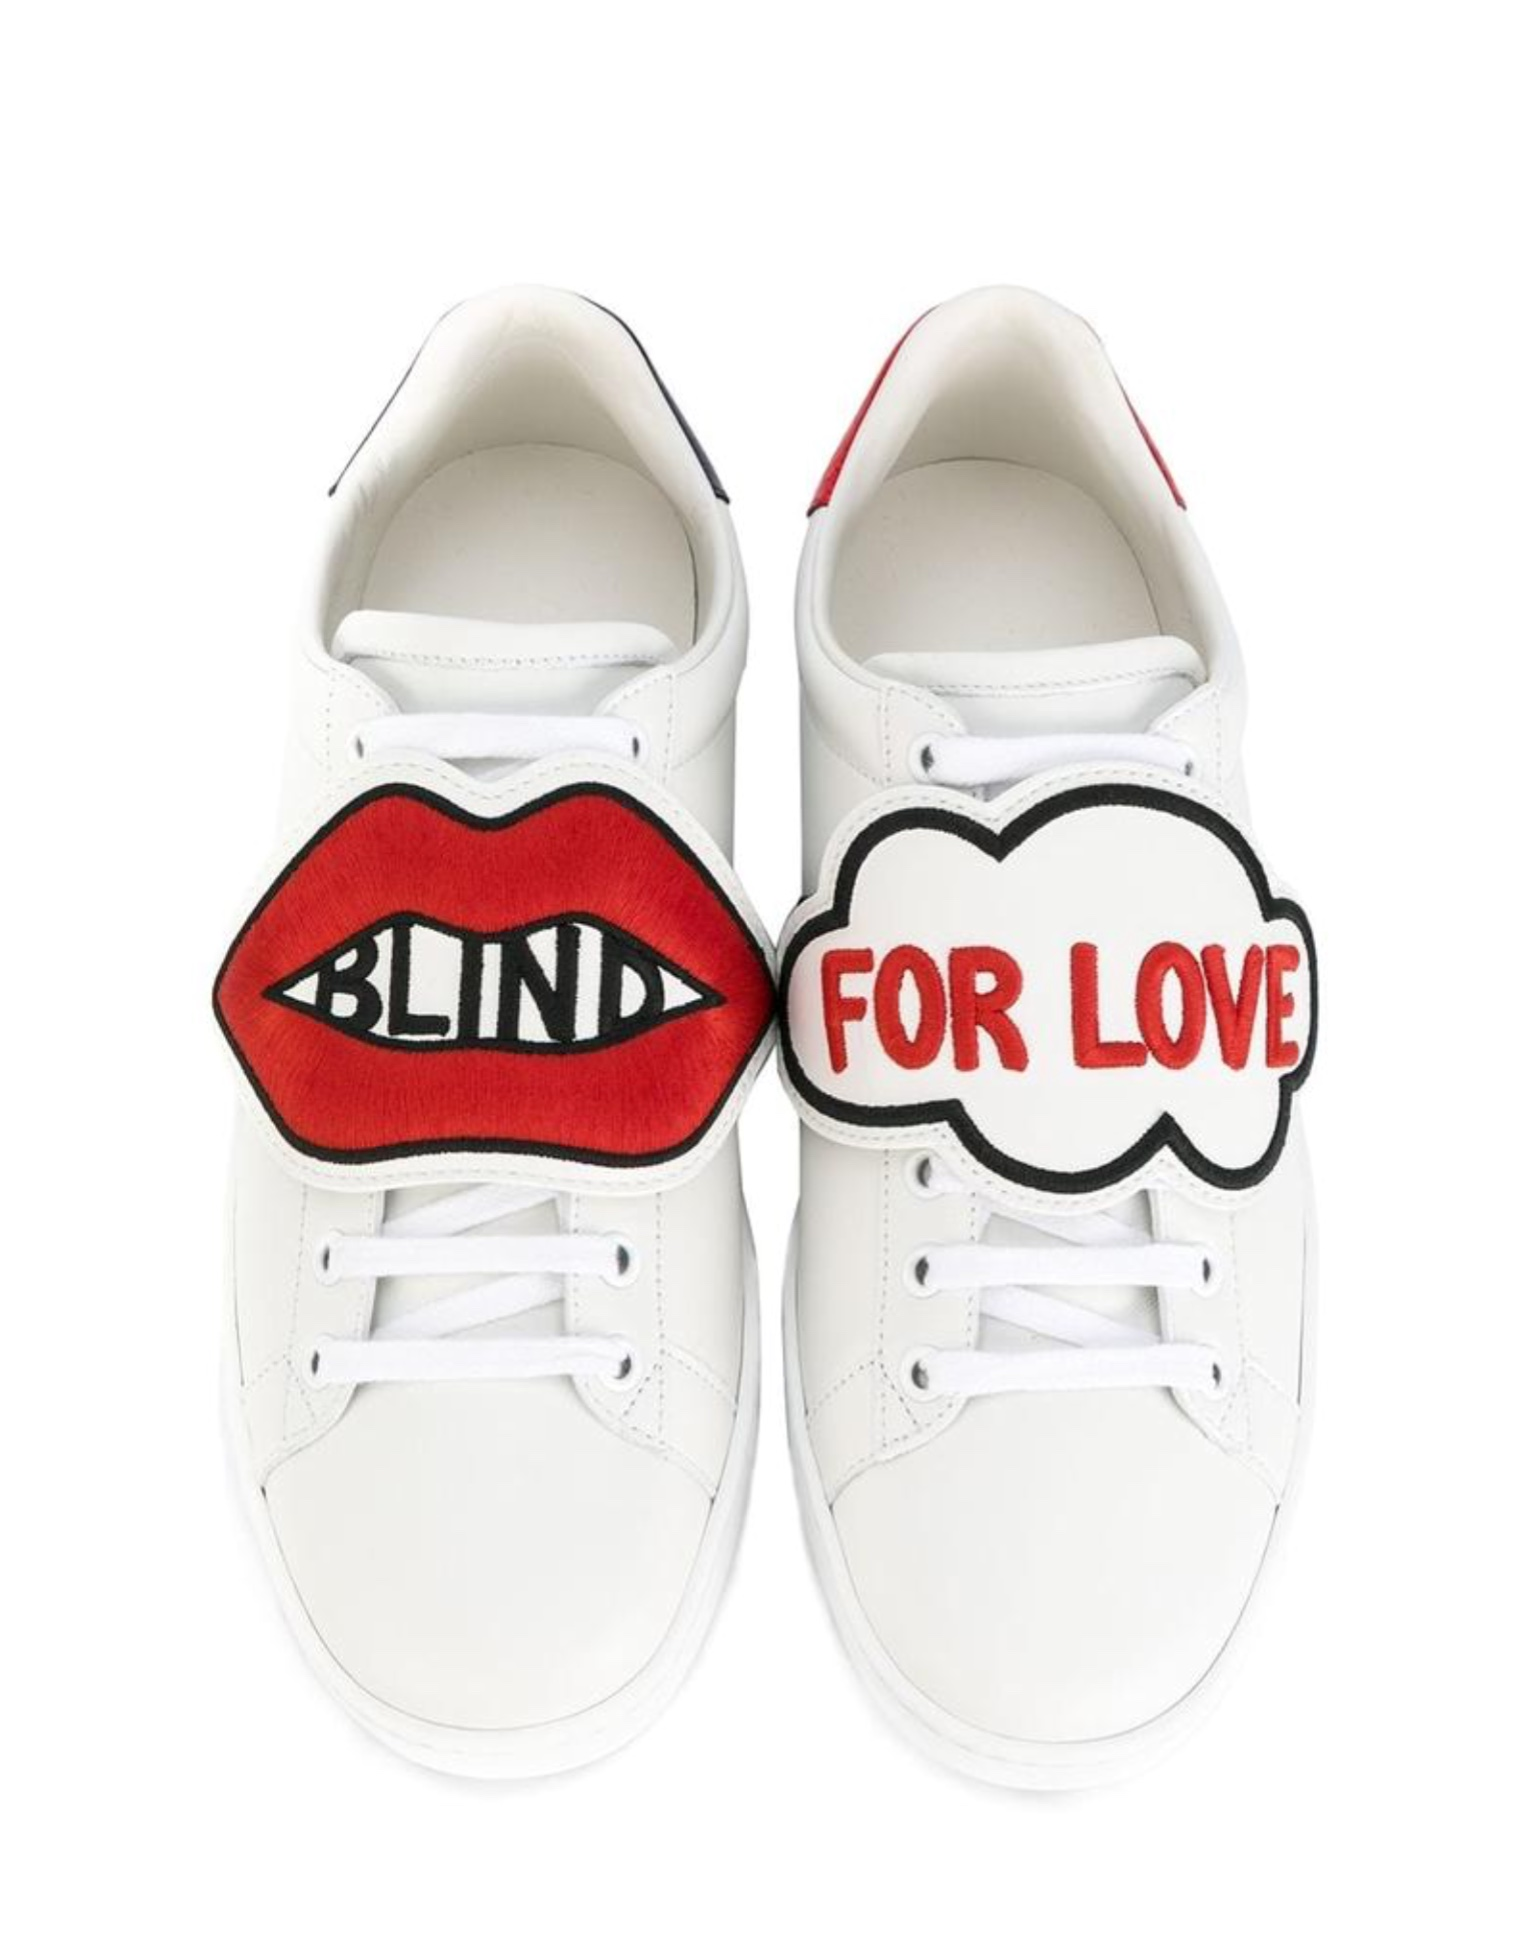 Gucci Blind for love sneakers - Not